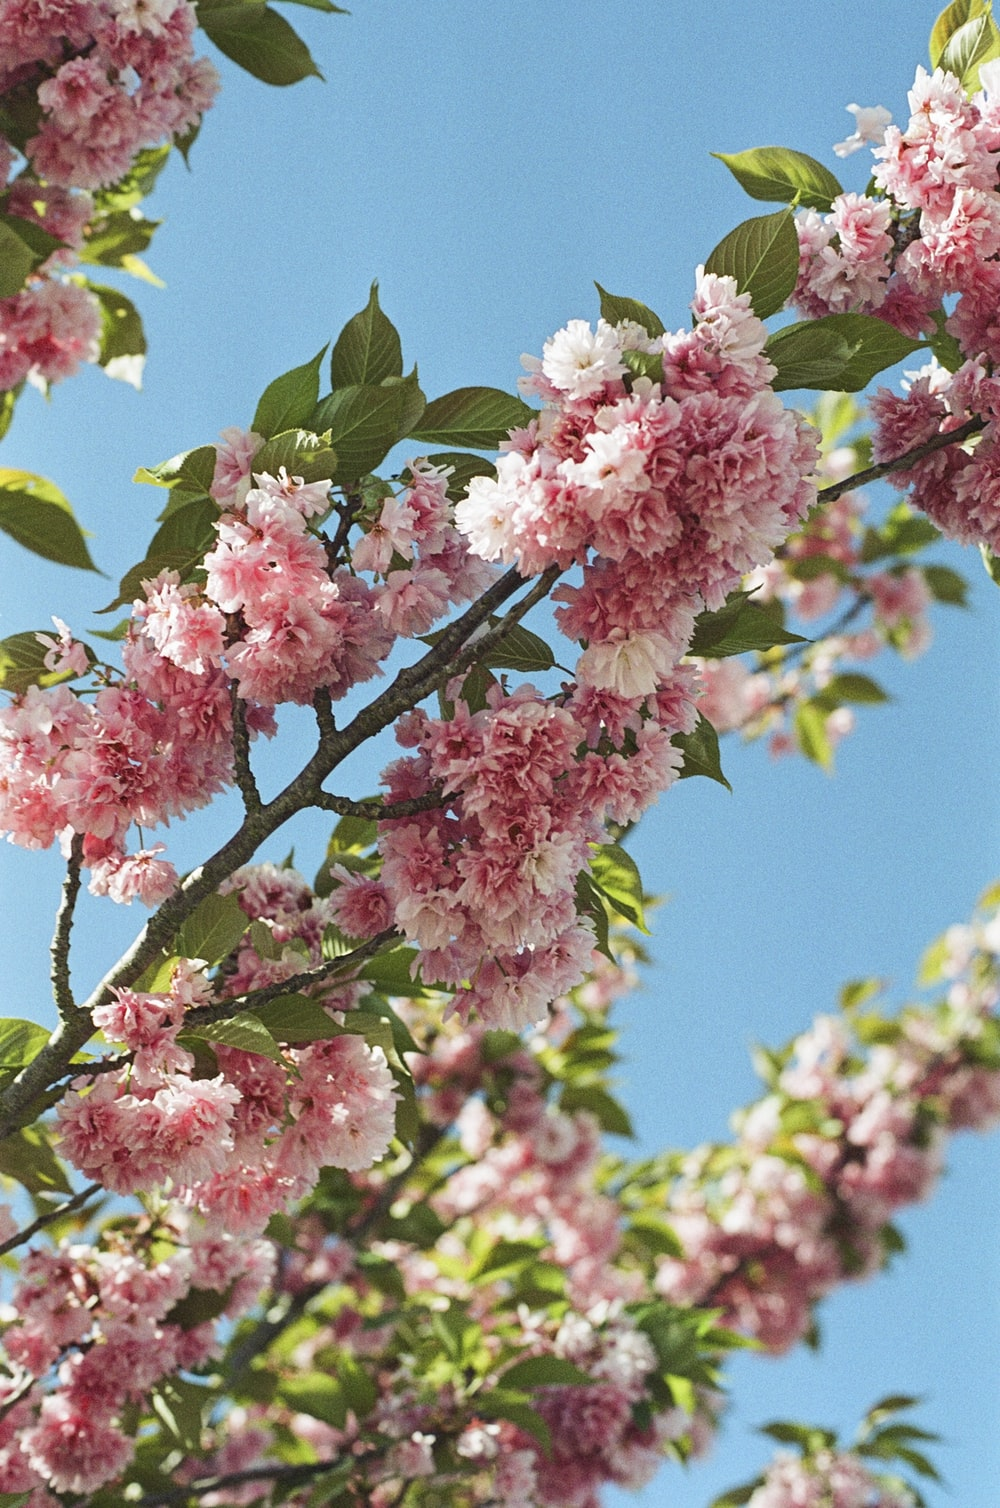 pink and white flowers on tree branch